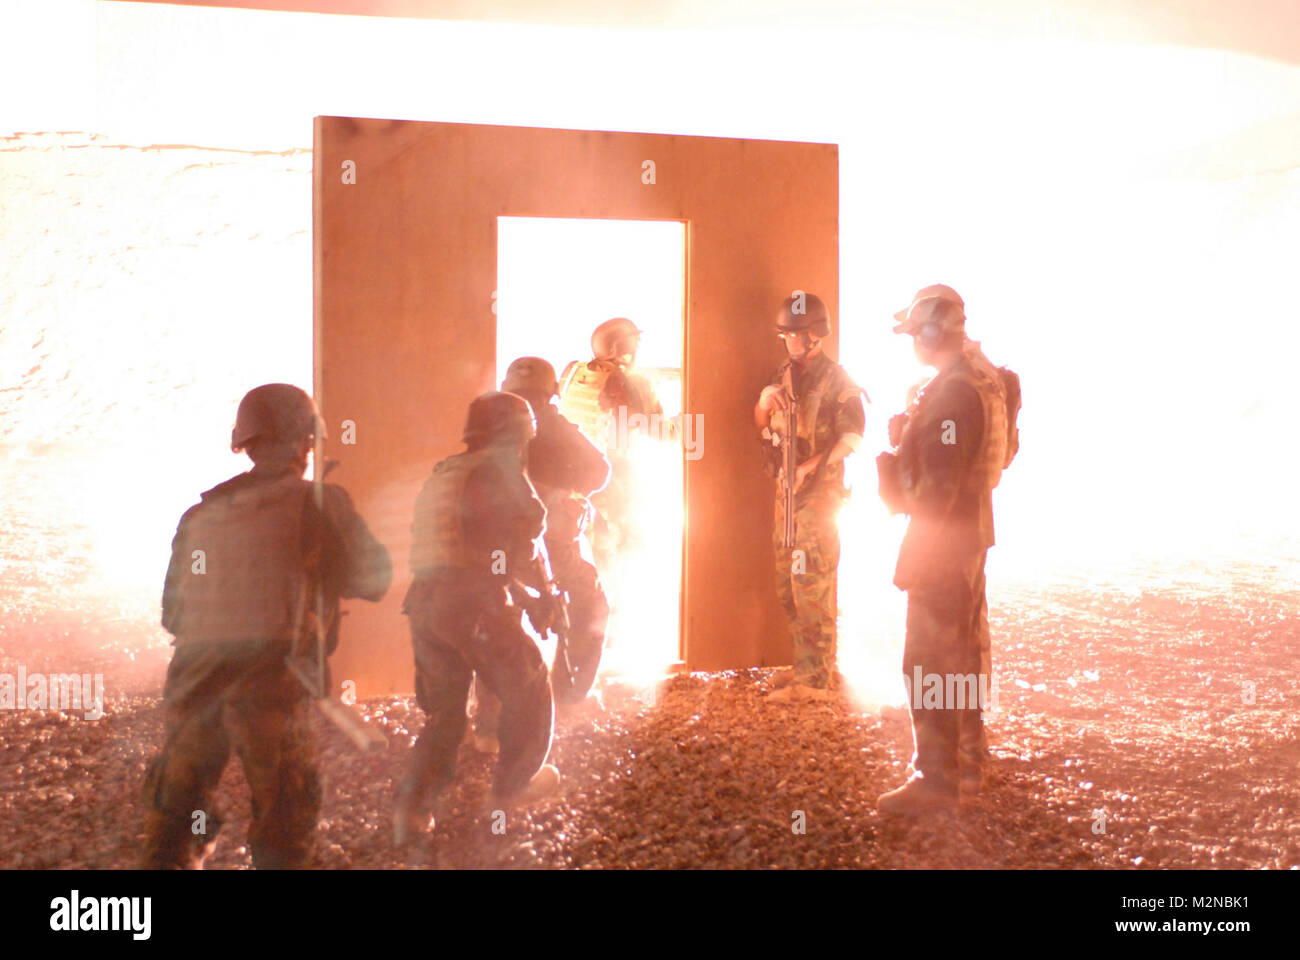 Guiding Light by United States Forces - Iraq (Inactive) - Stock Image